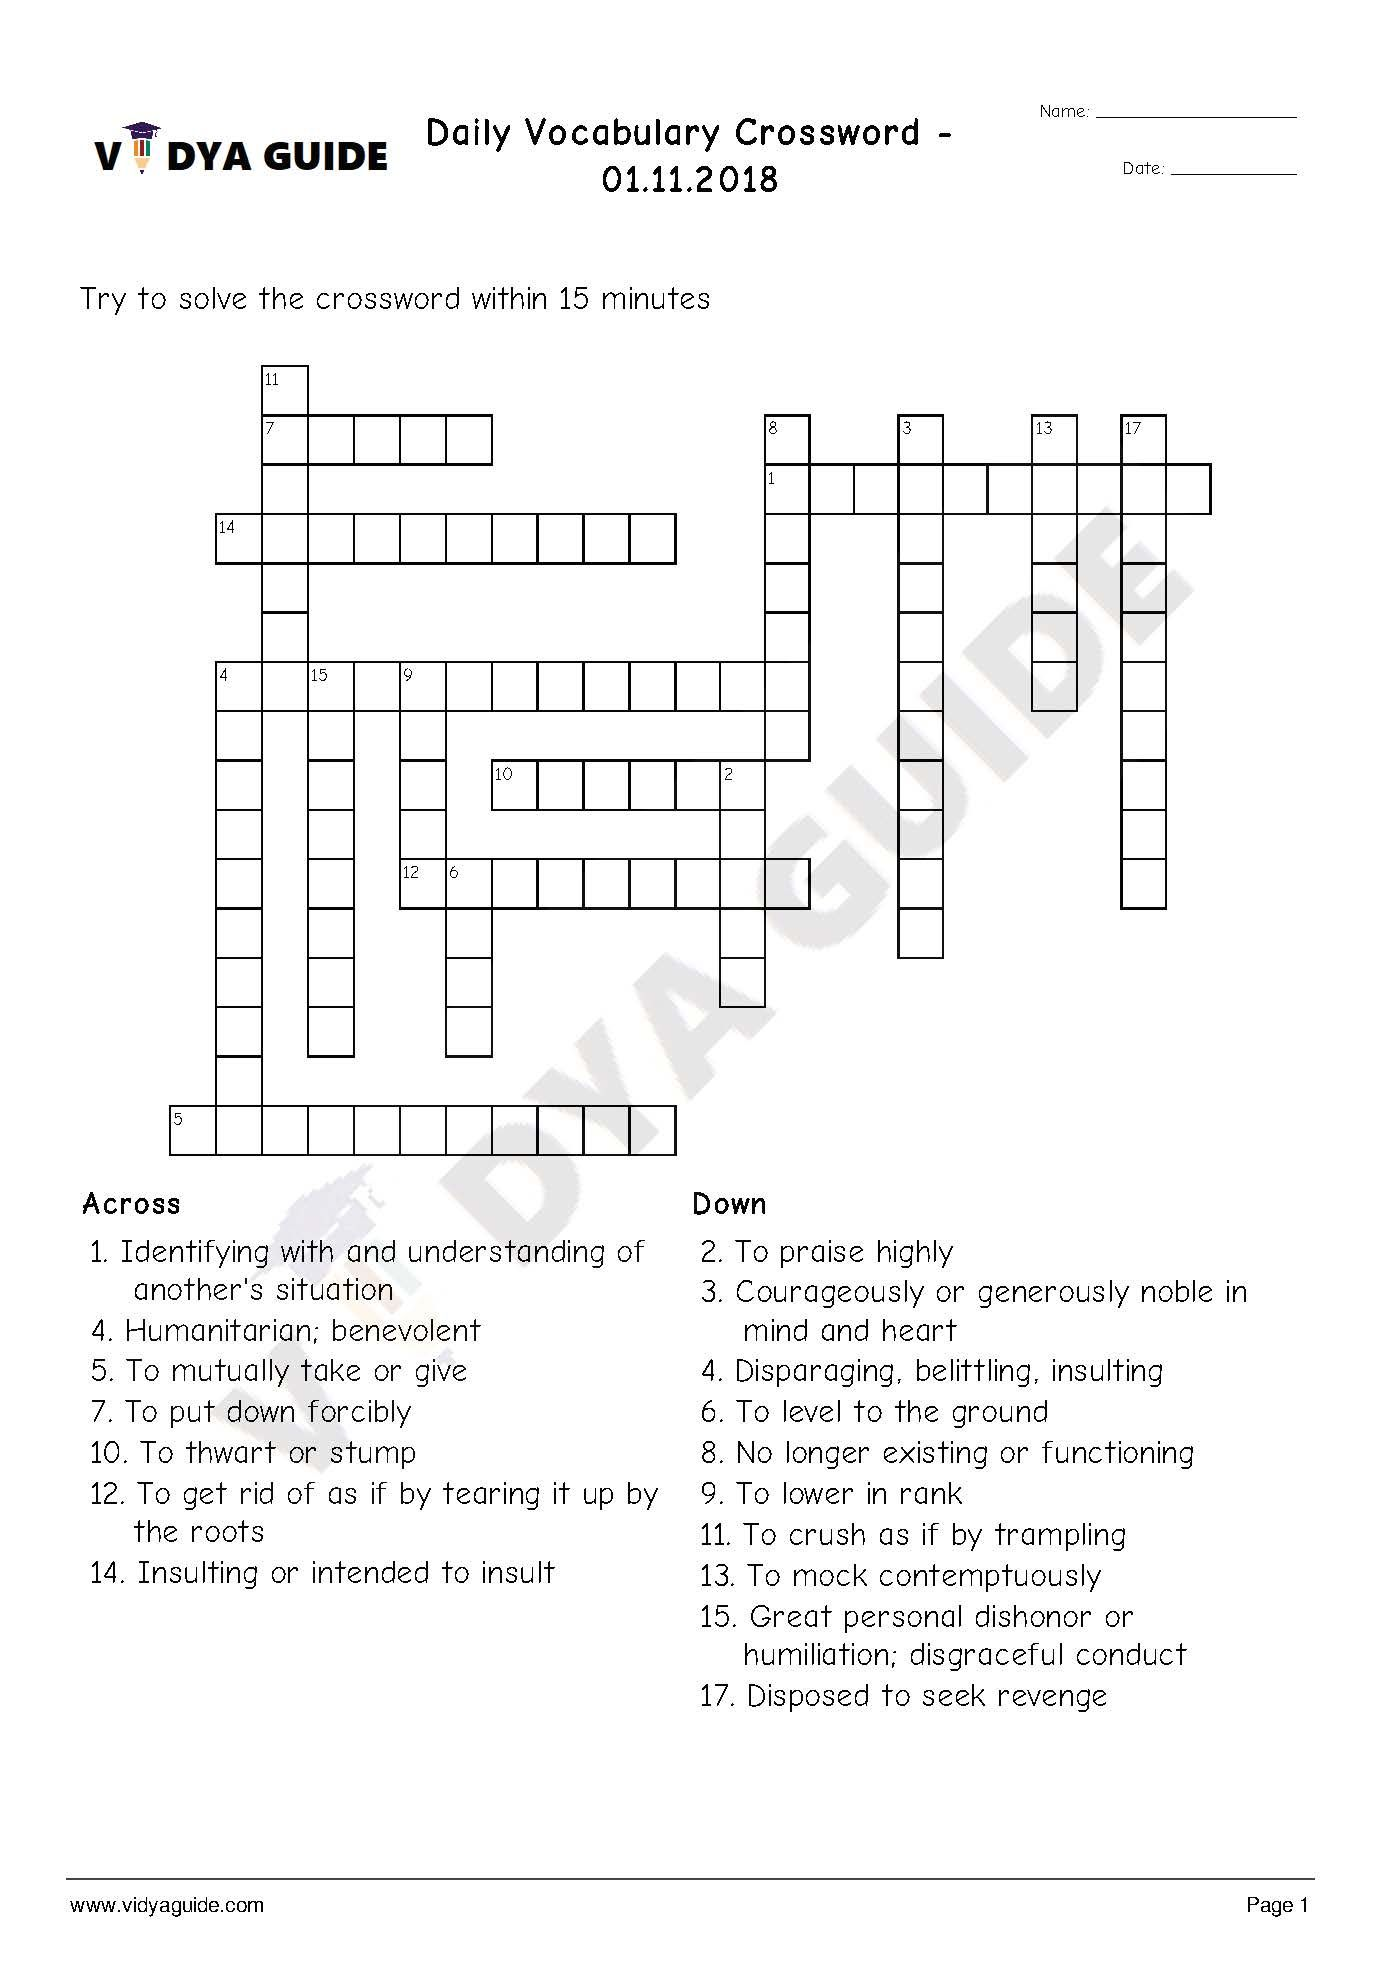 Download Daily Crossword Worksheet For English Vocabulary